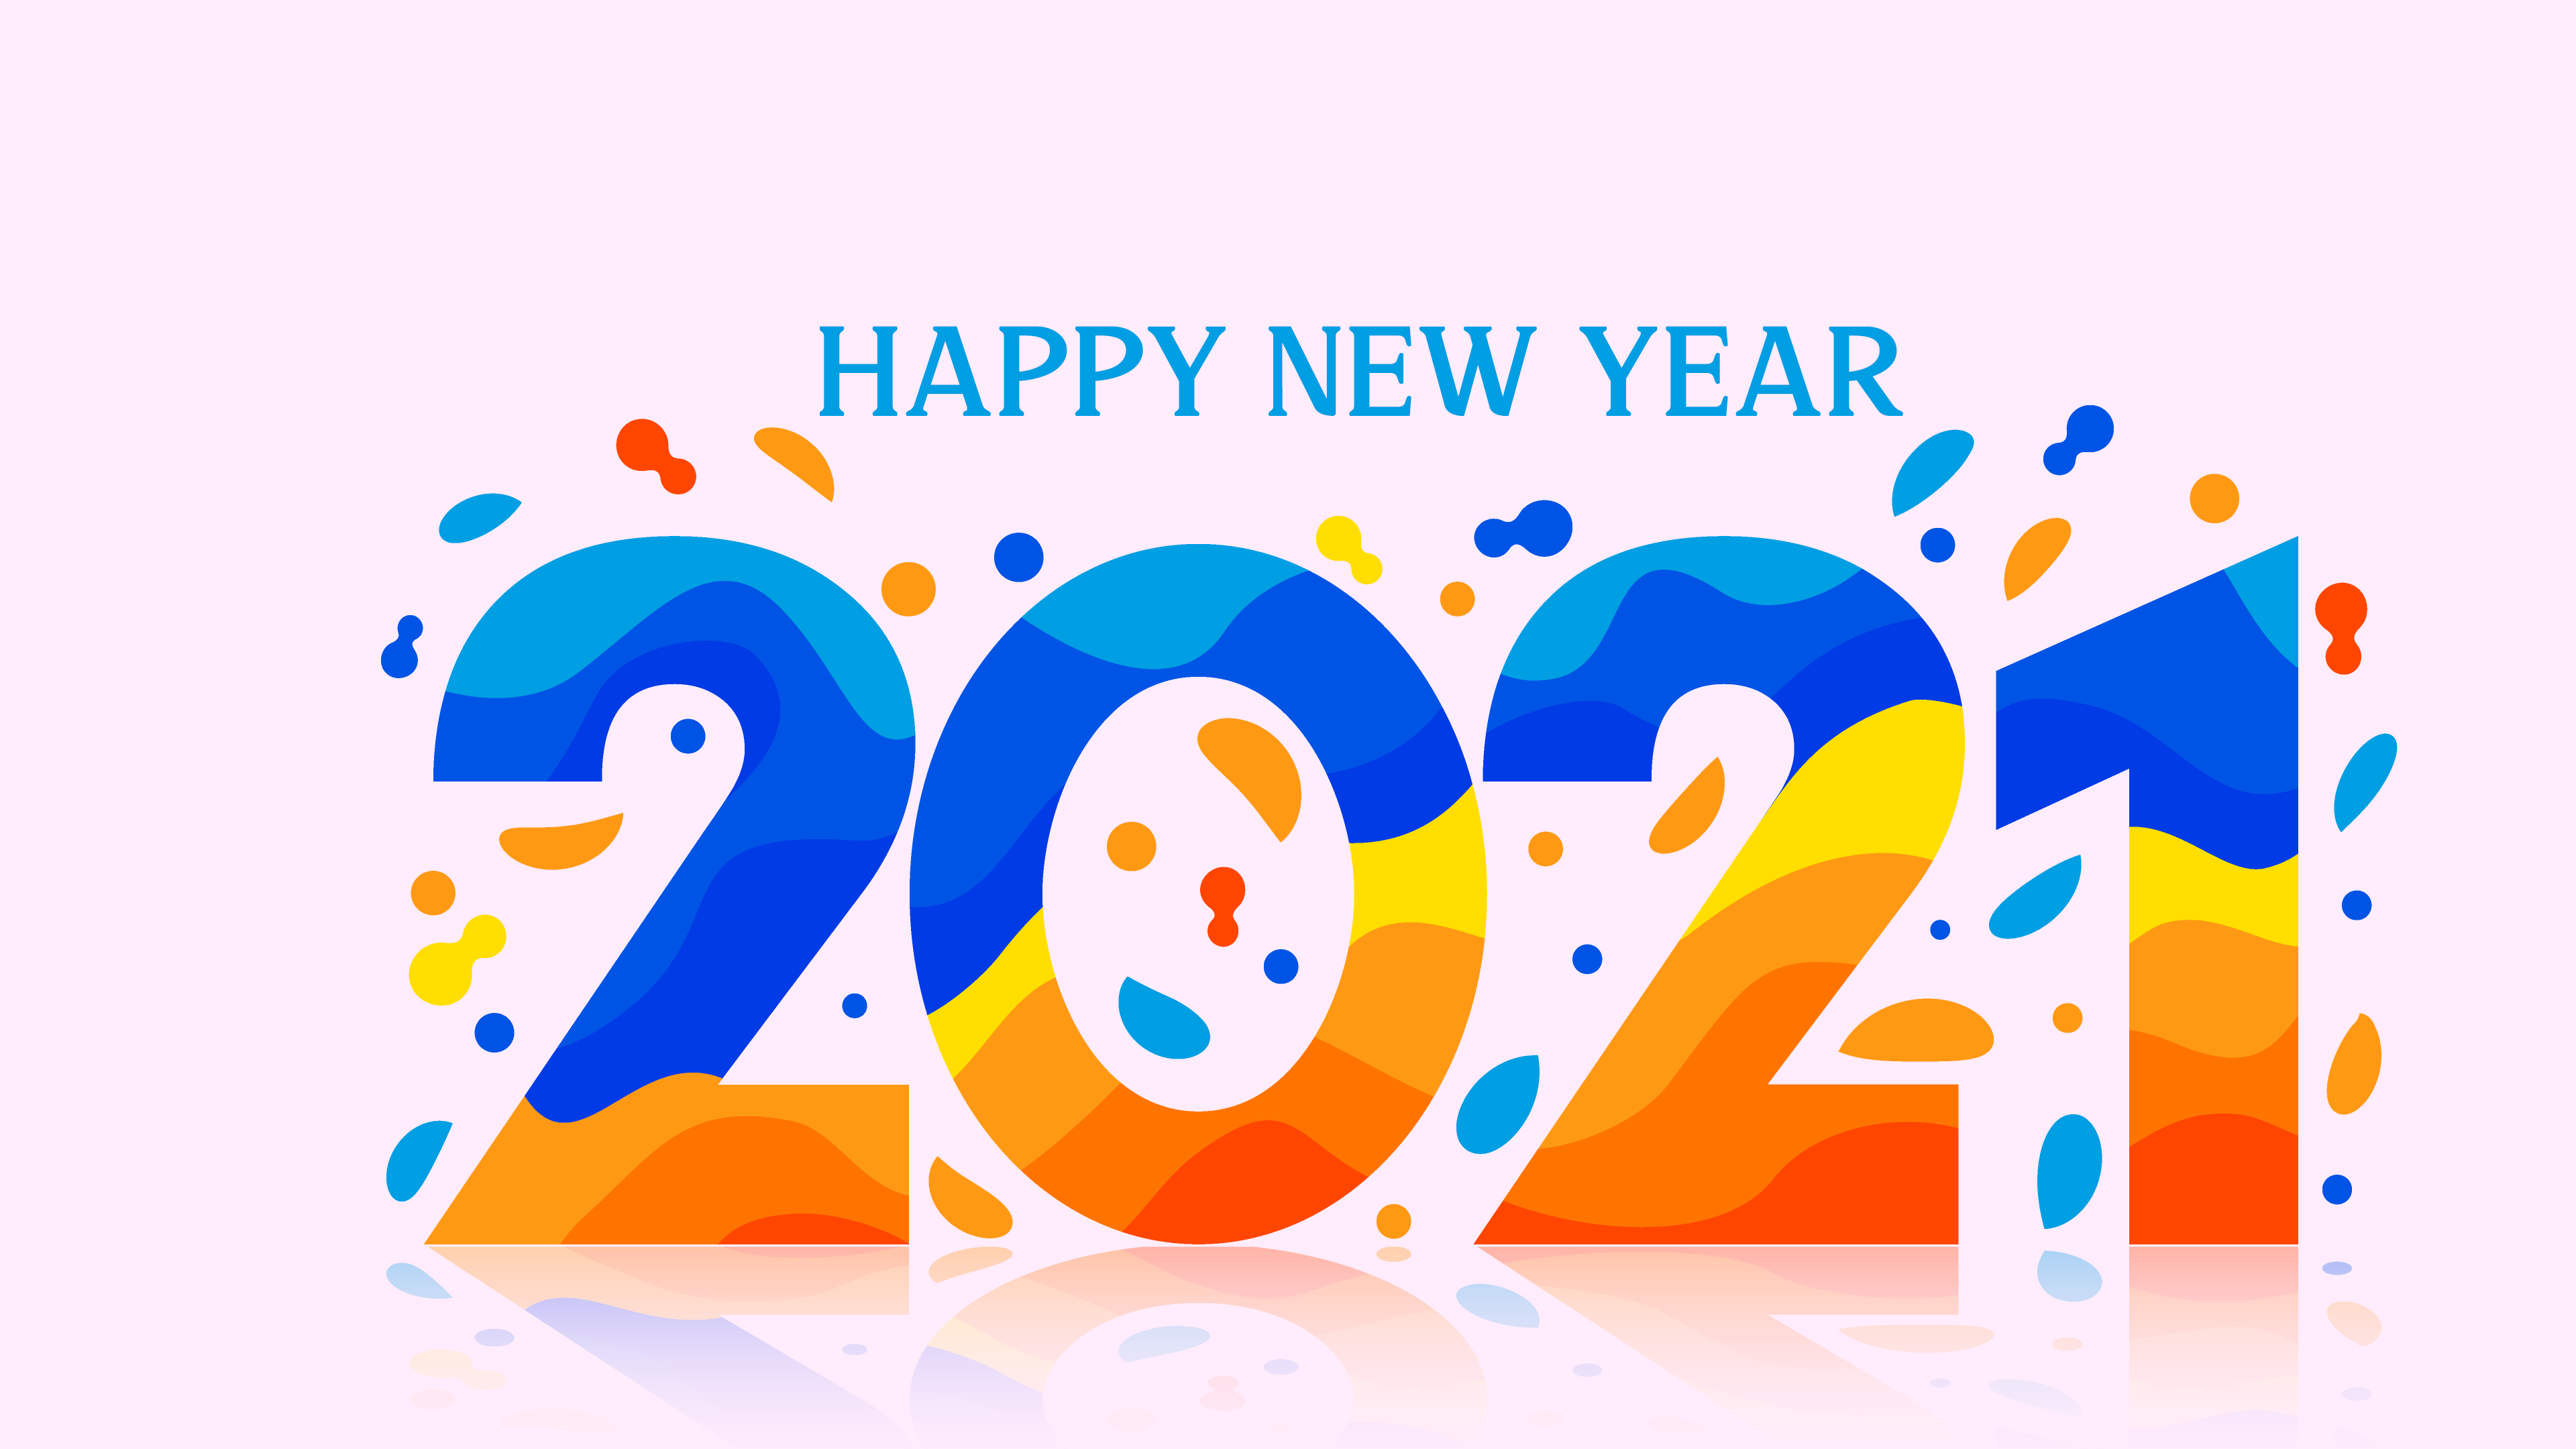 2021 Happy New Year HD Wallpaper 4K